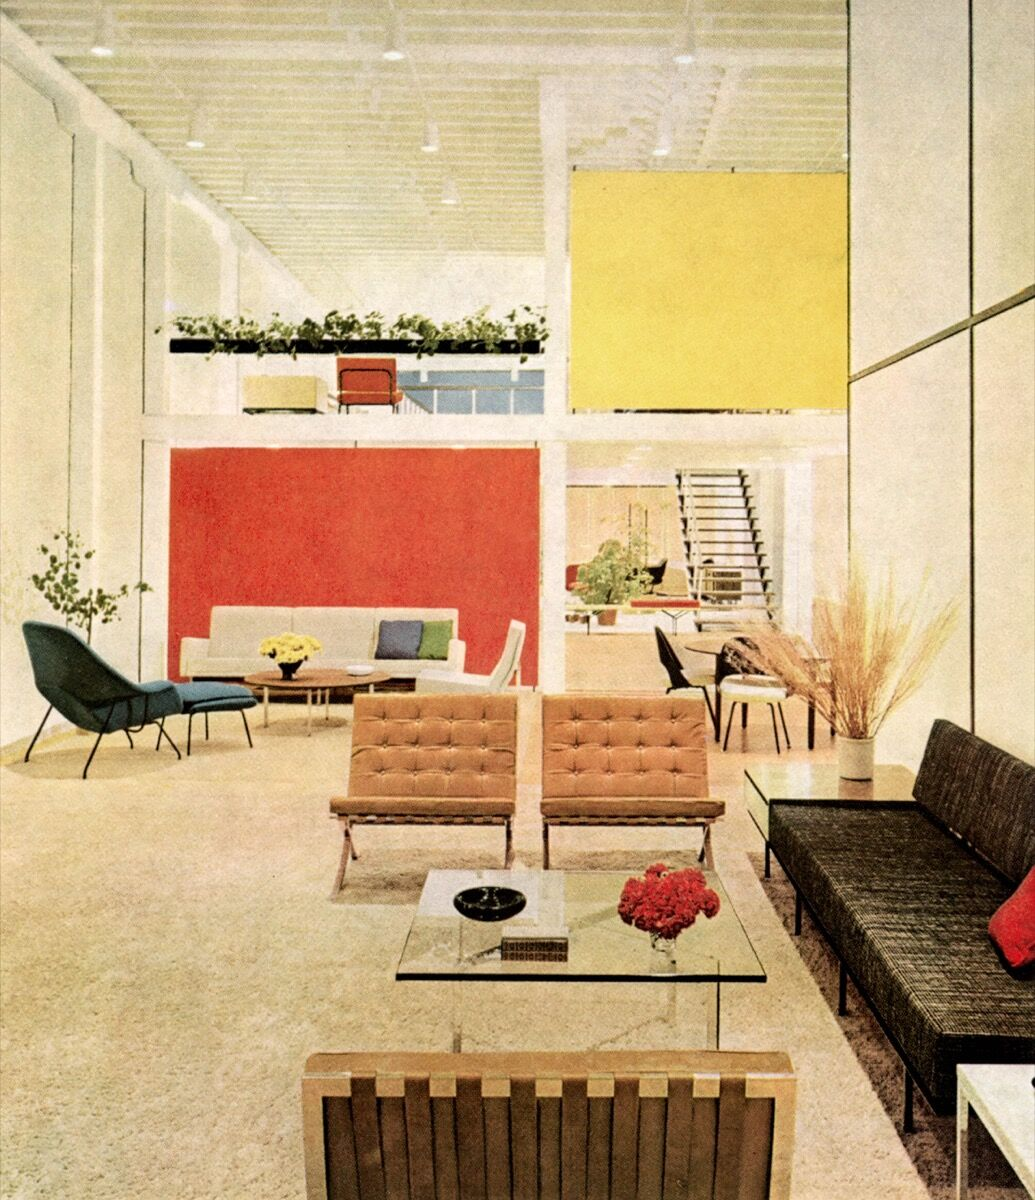 Knoll Showroom in San Francisco, California, 1954. Courtesy of Knoll, Inc.